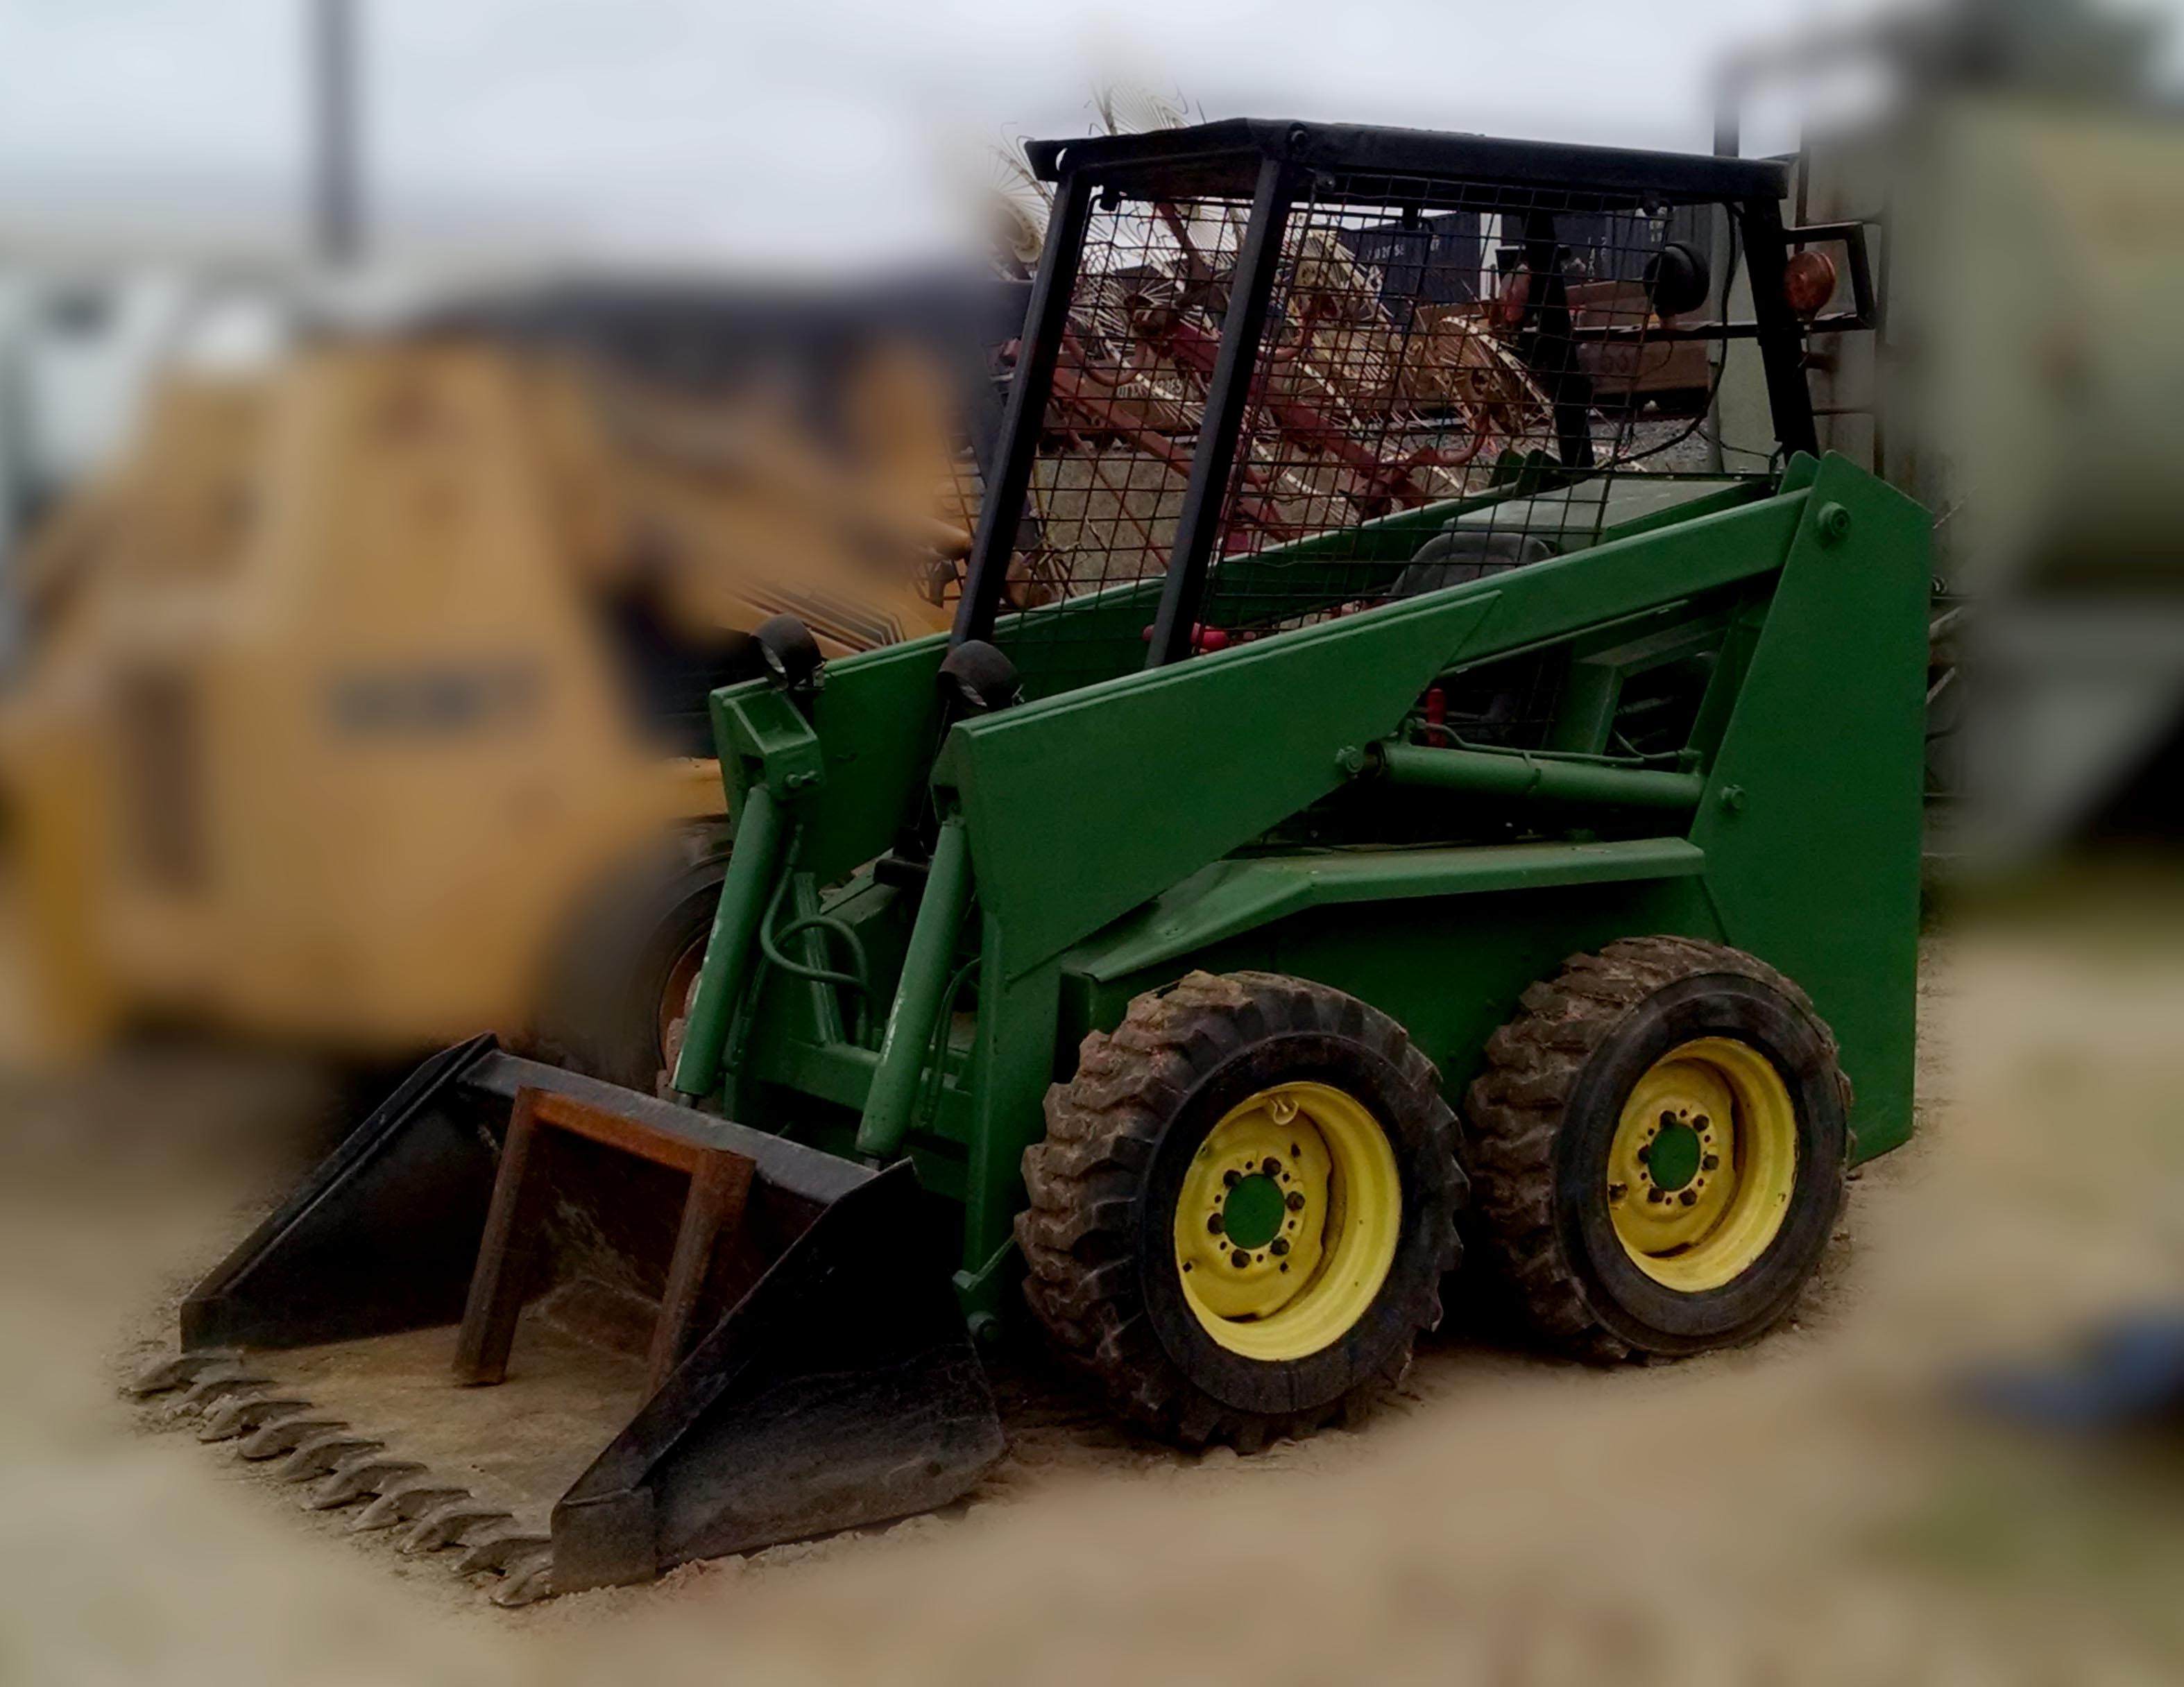 John Deere Skid Steer >> John Deere 125 Skid Steer Attachments Specifications